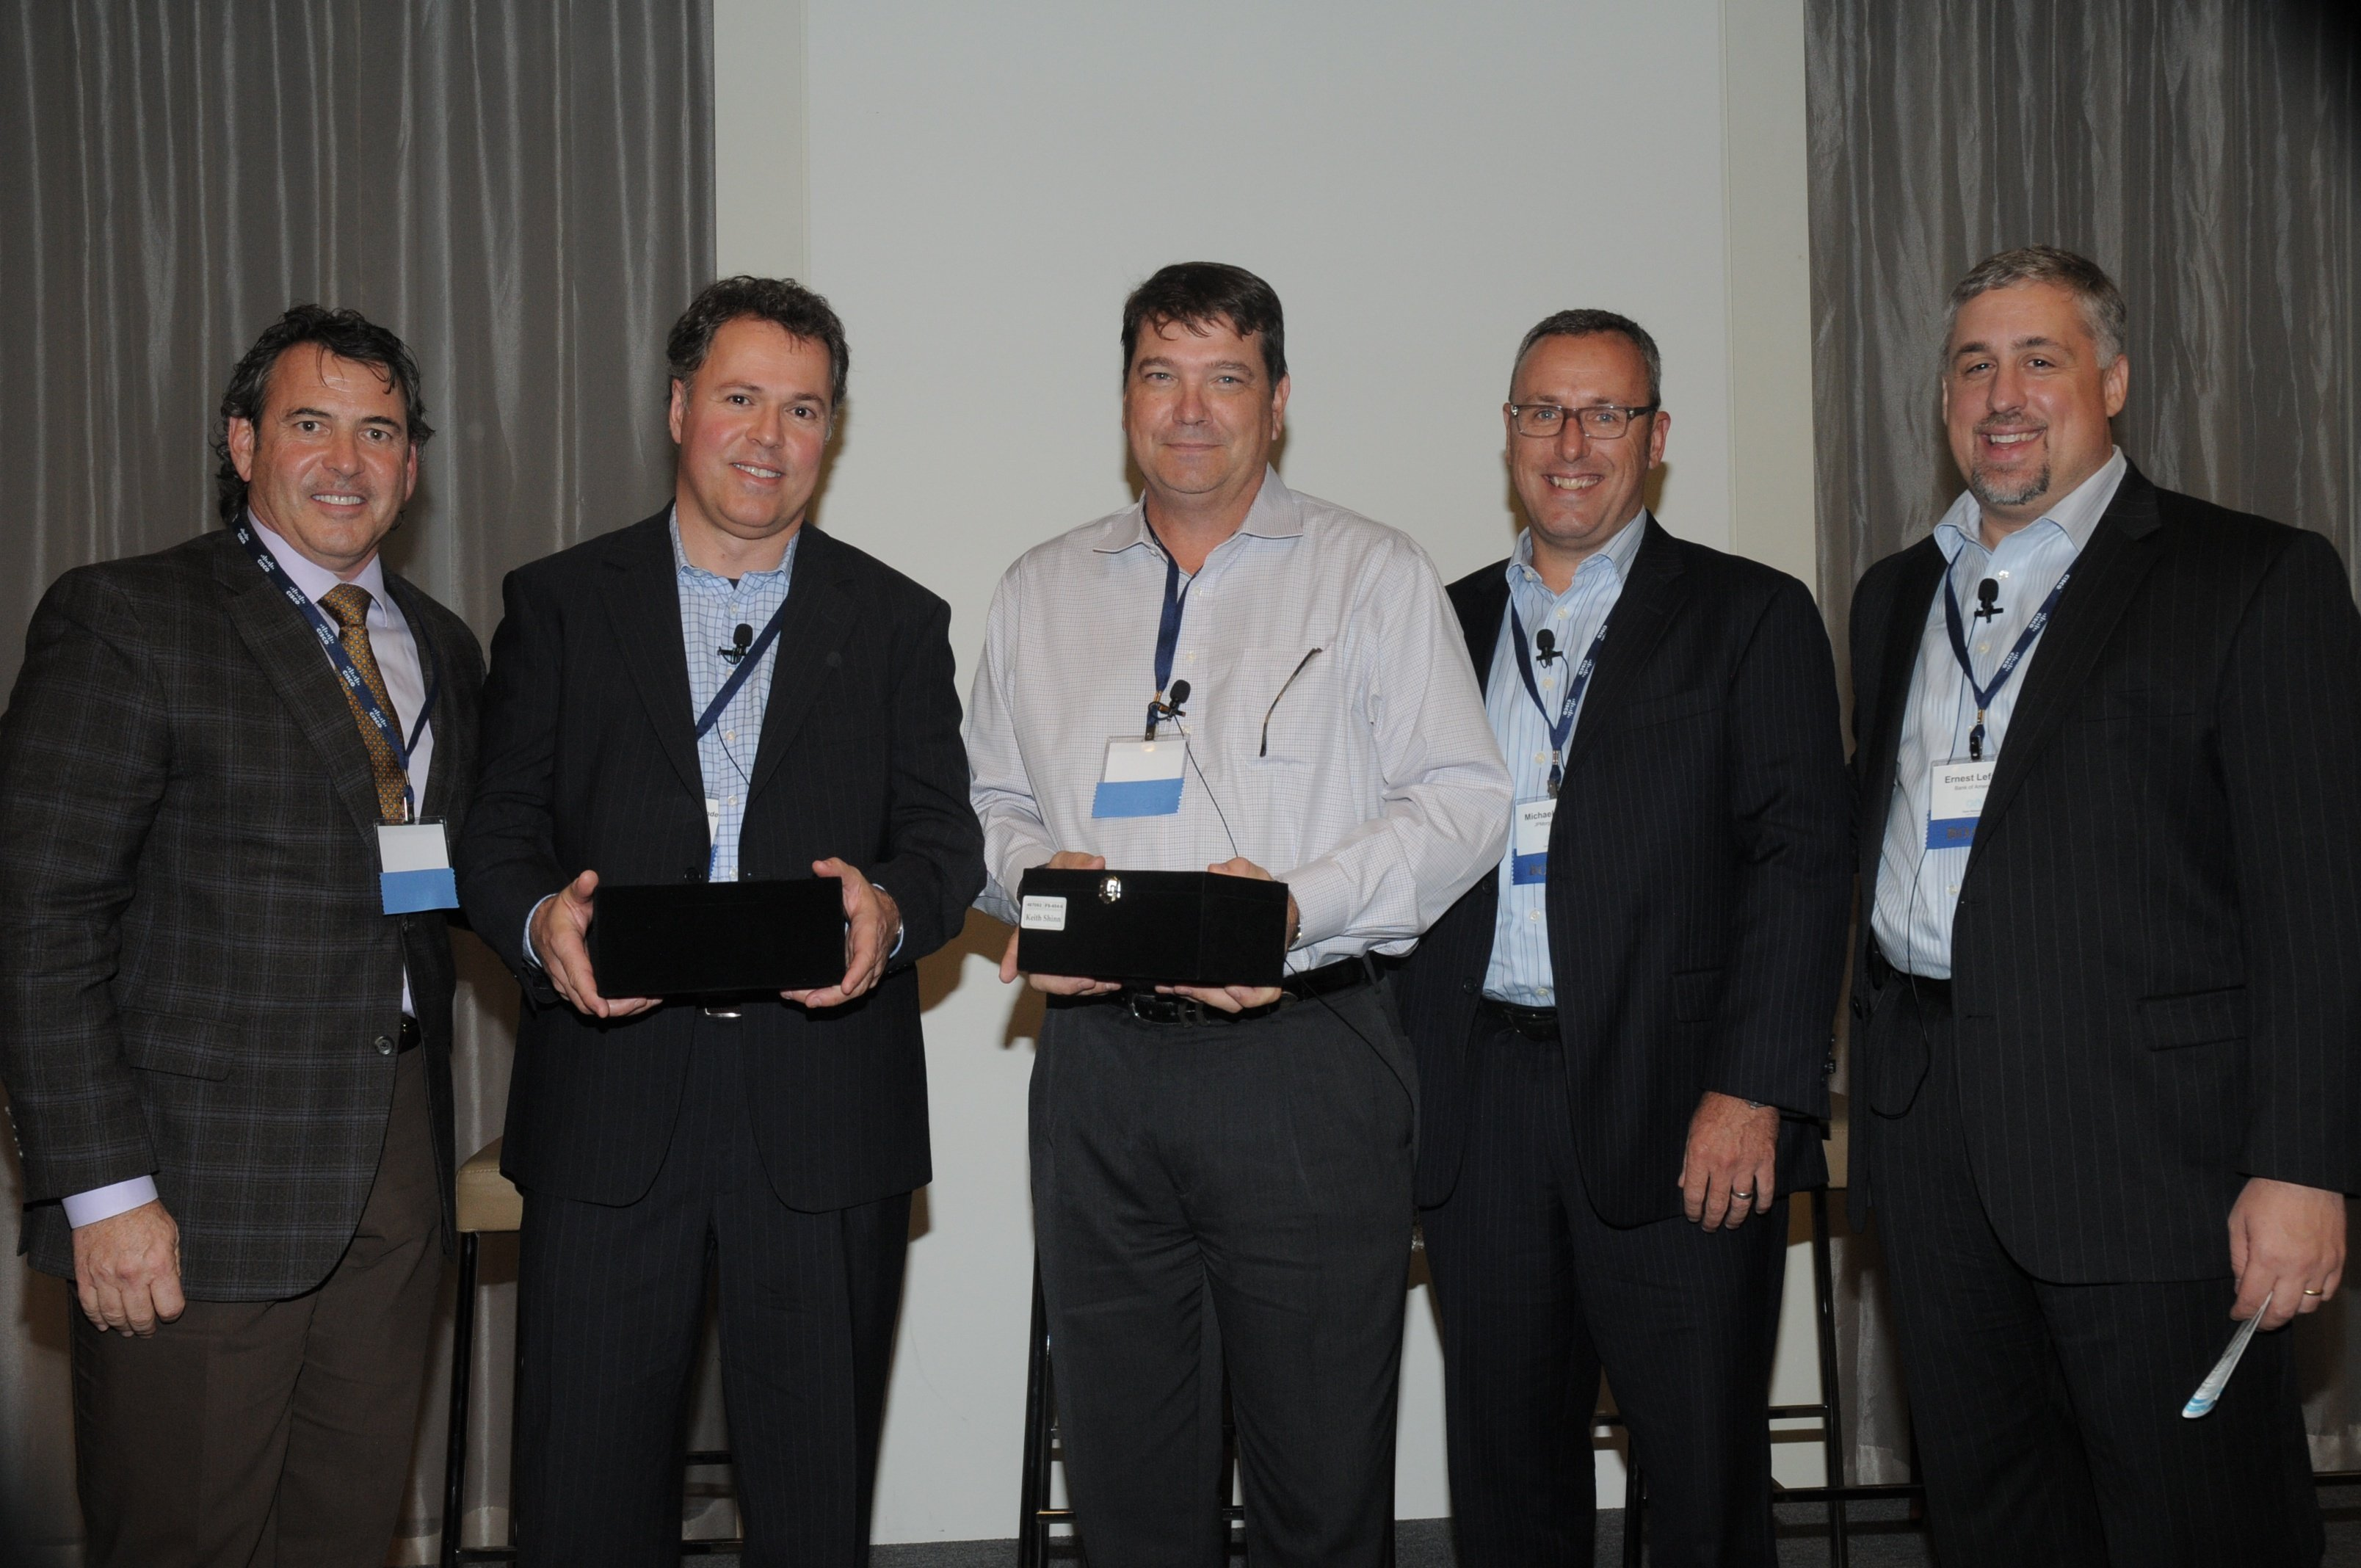 New ONUG Board members Harmen Van der Linde, Citigroup, and Keith Shinn, Fidelity Investments, accept membership awards from fellow board members Nick Lippis of Lippis Enterprises, Michael Payne of JPMorgan Chase, and Ernest Lefner of Bank of America